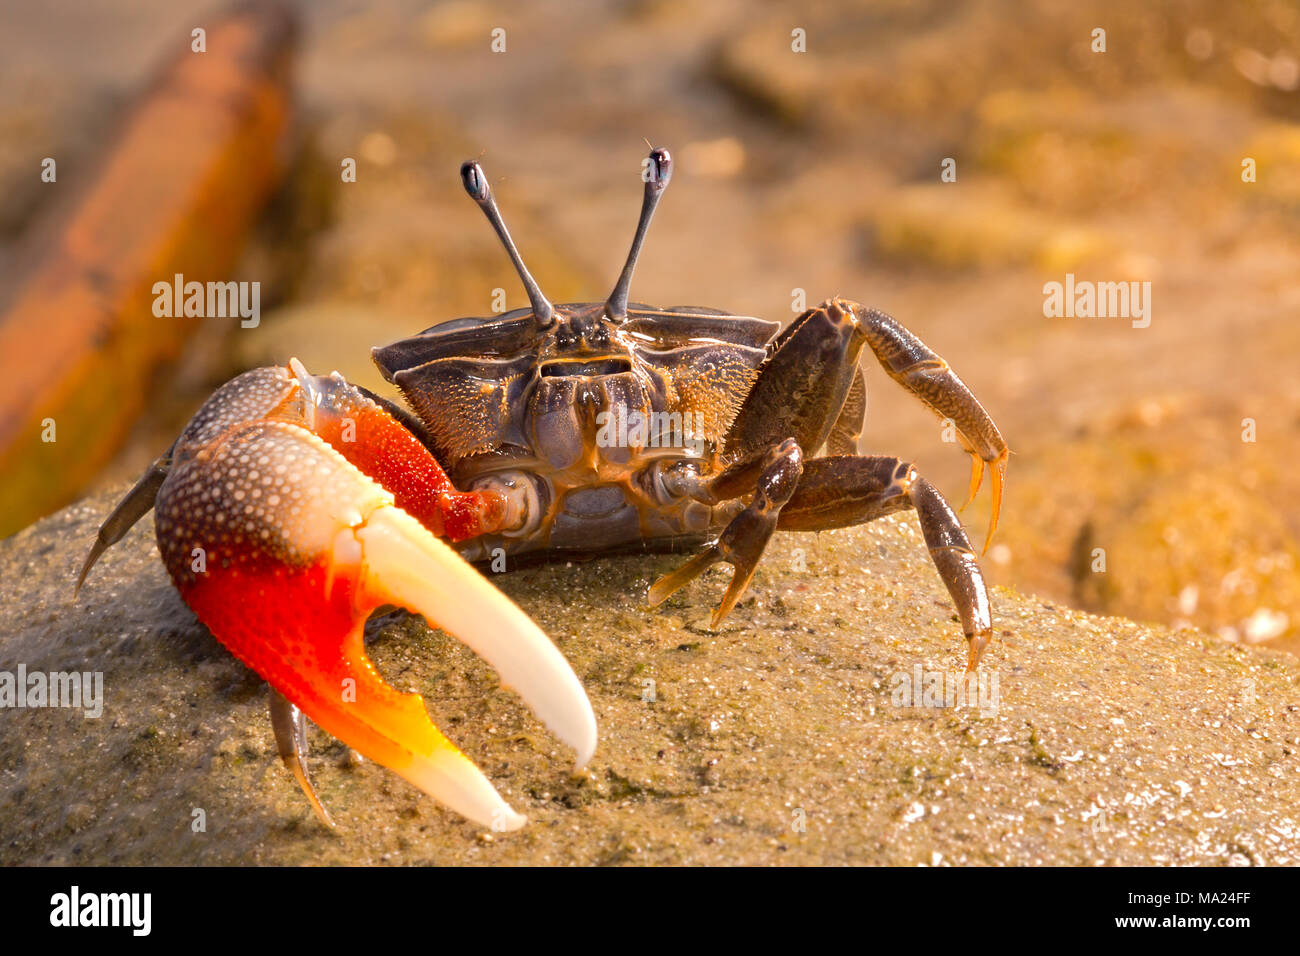 A fiddler crab, Uca sp, on the island of Yap, Micronesia. - Stock Image